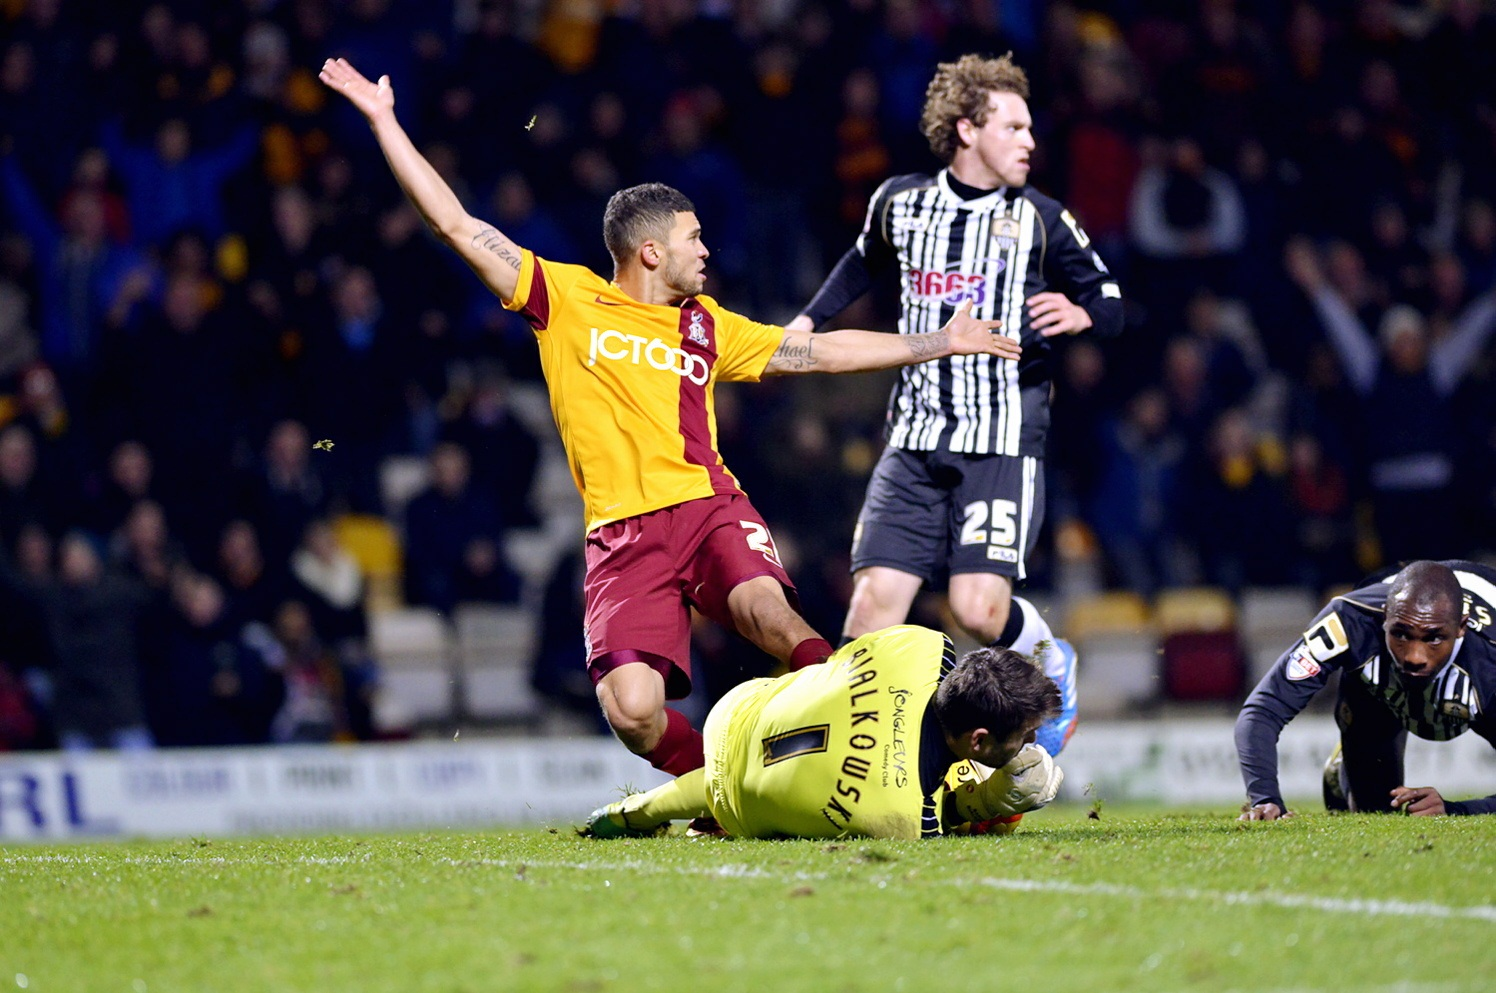 Bradford City striker Wells attracting Premier interest